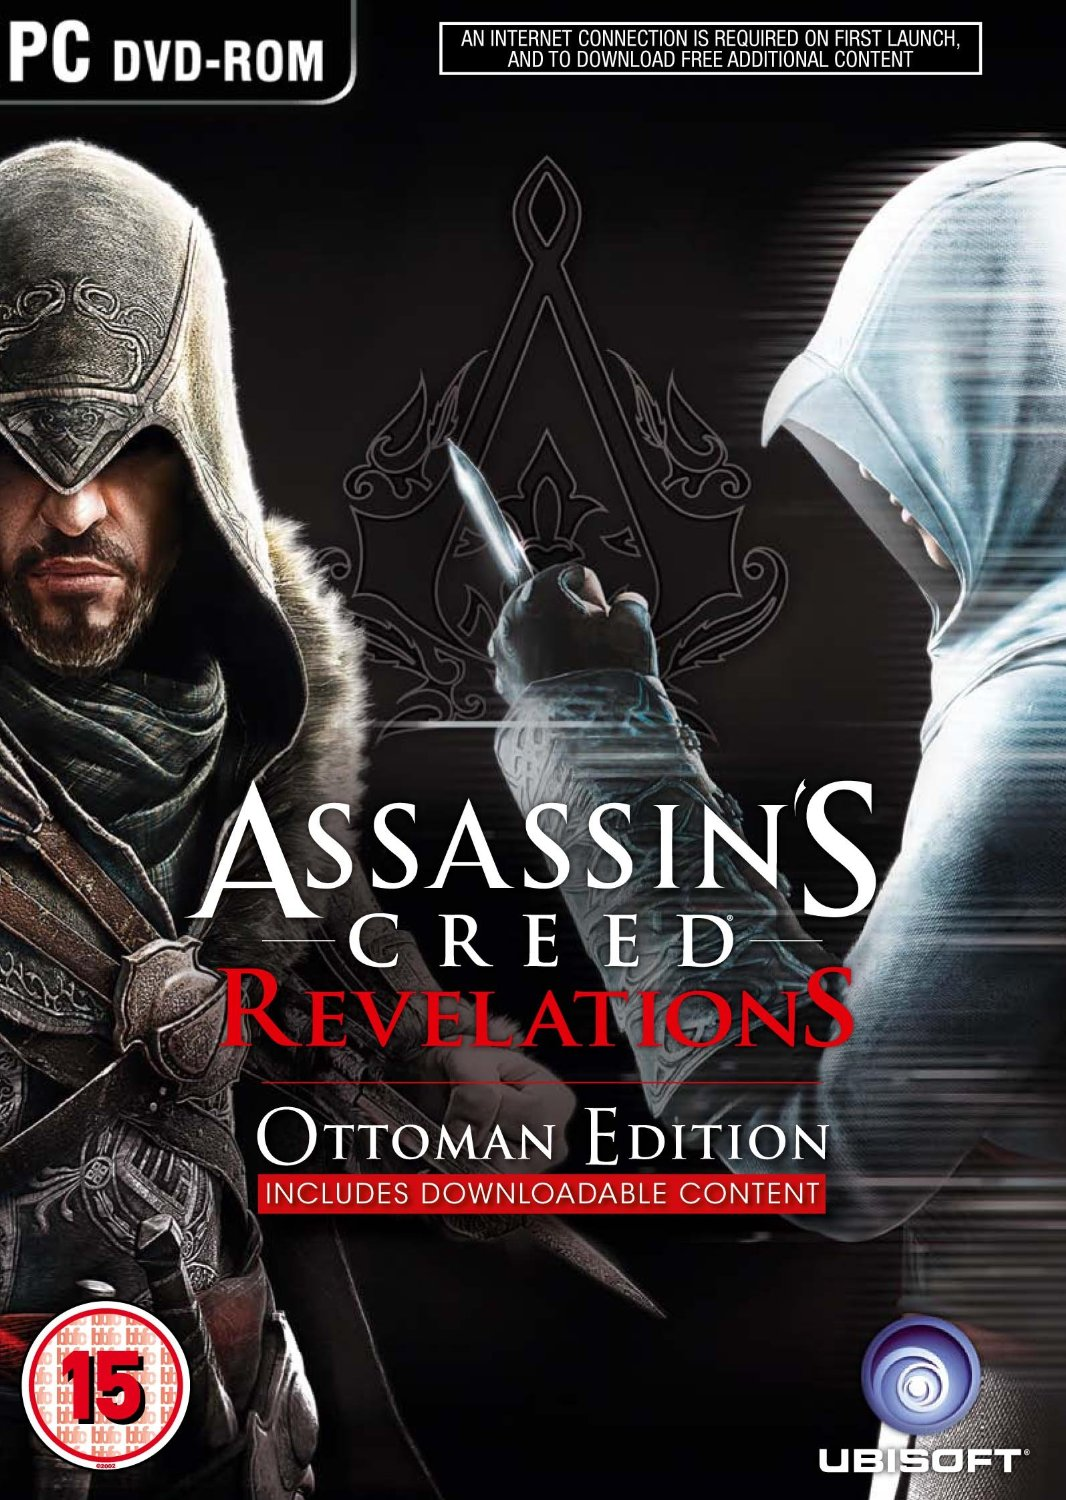 Trophies - Assassin's Creed: Revelations Guide